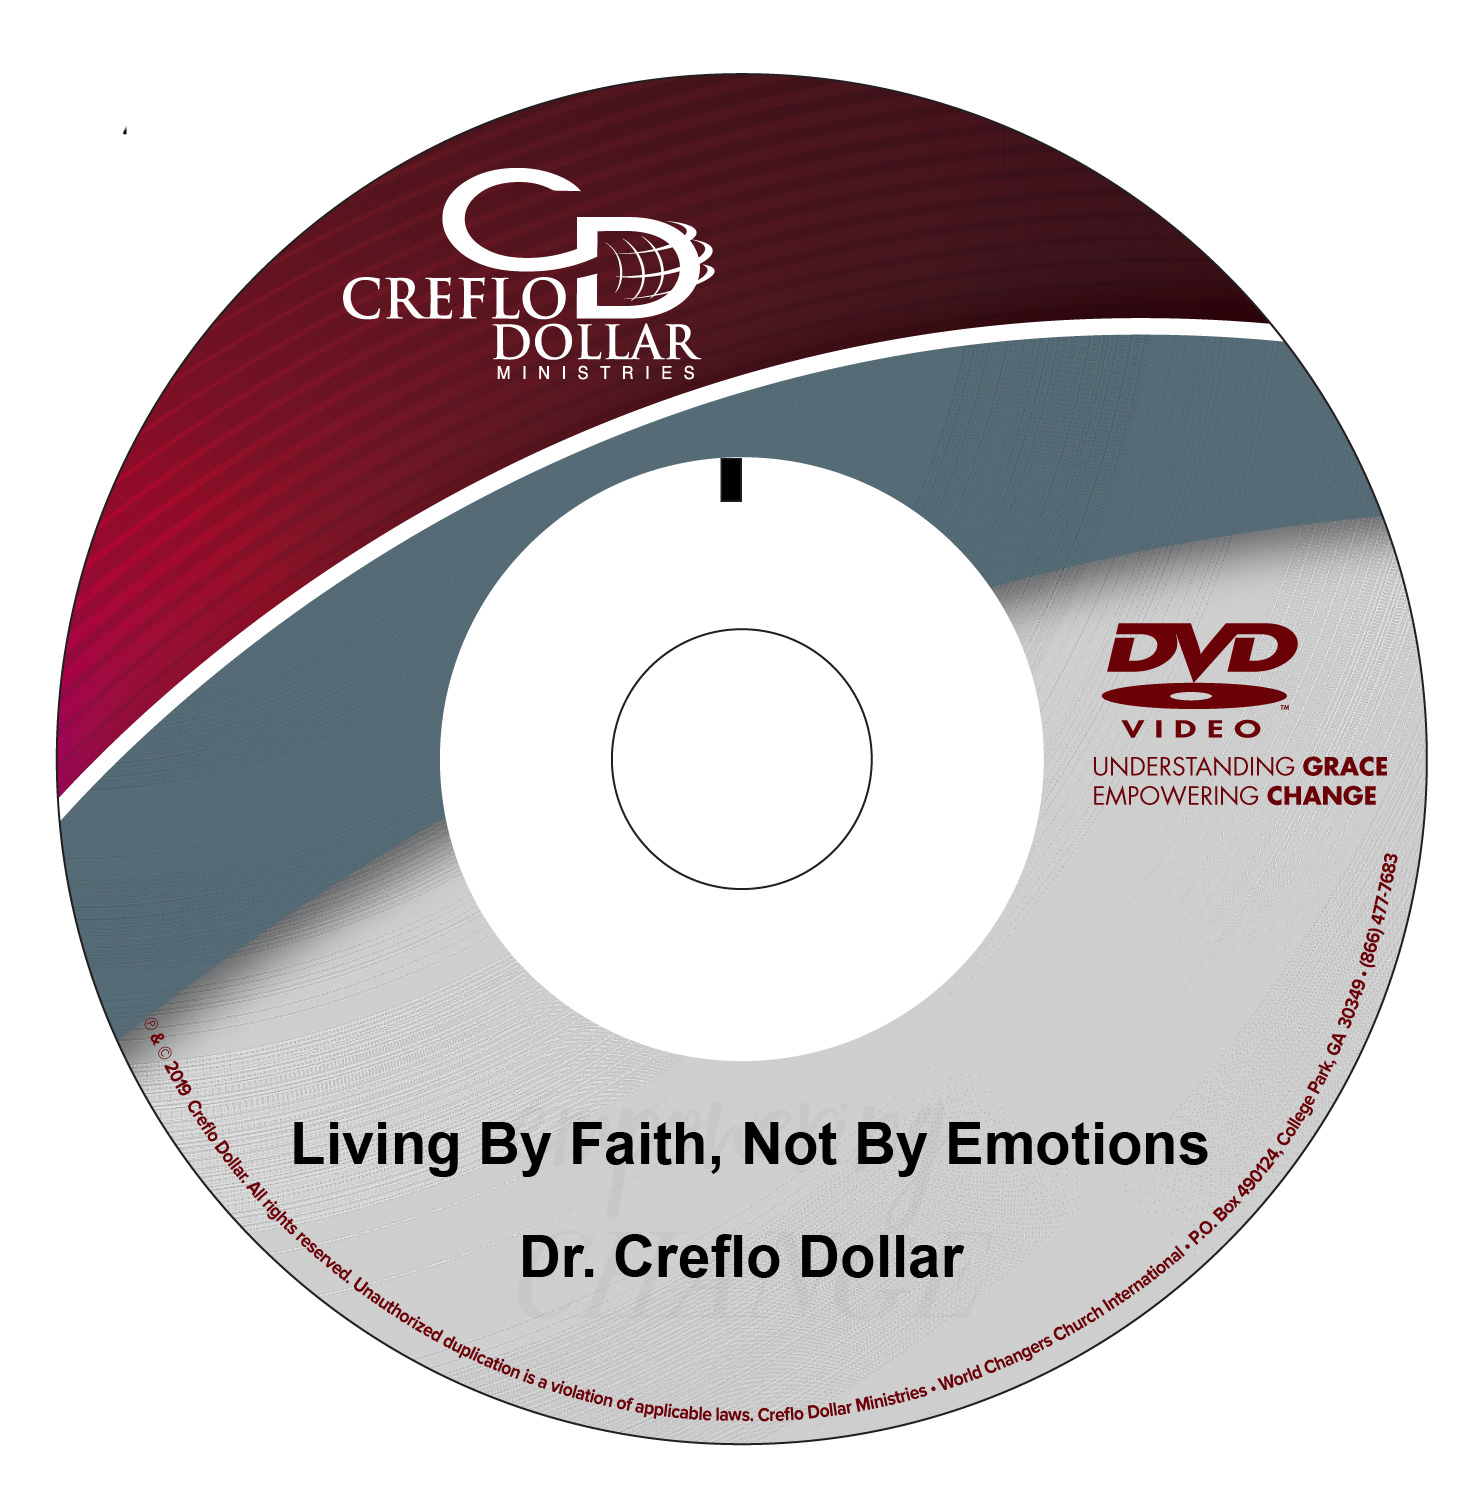 Living By Faith, Not By Emotions - DVD Single